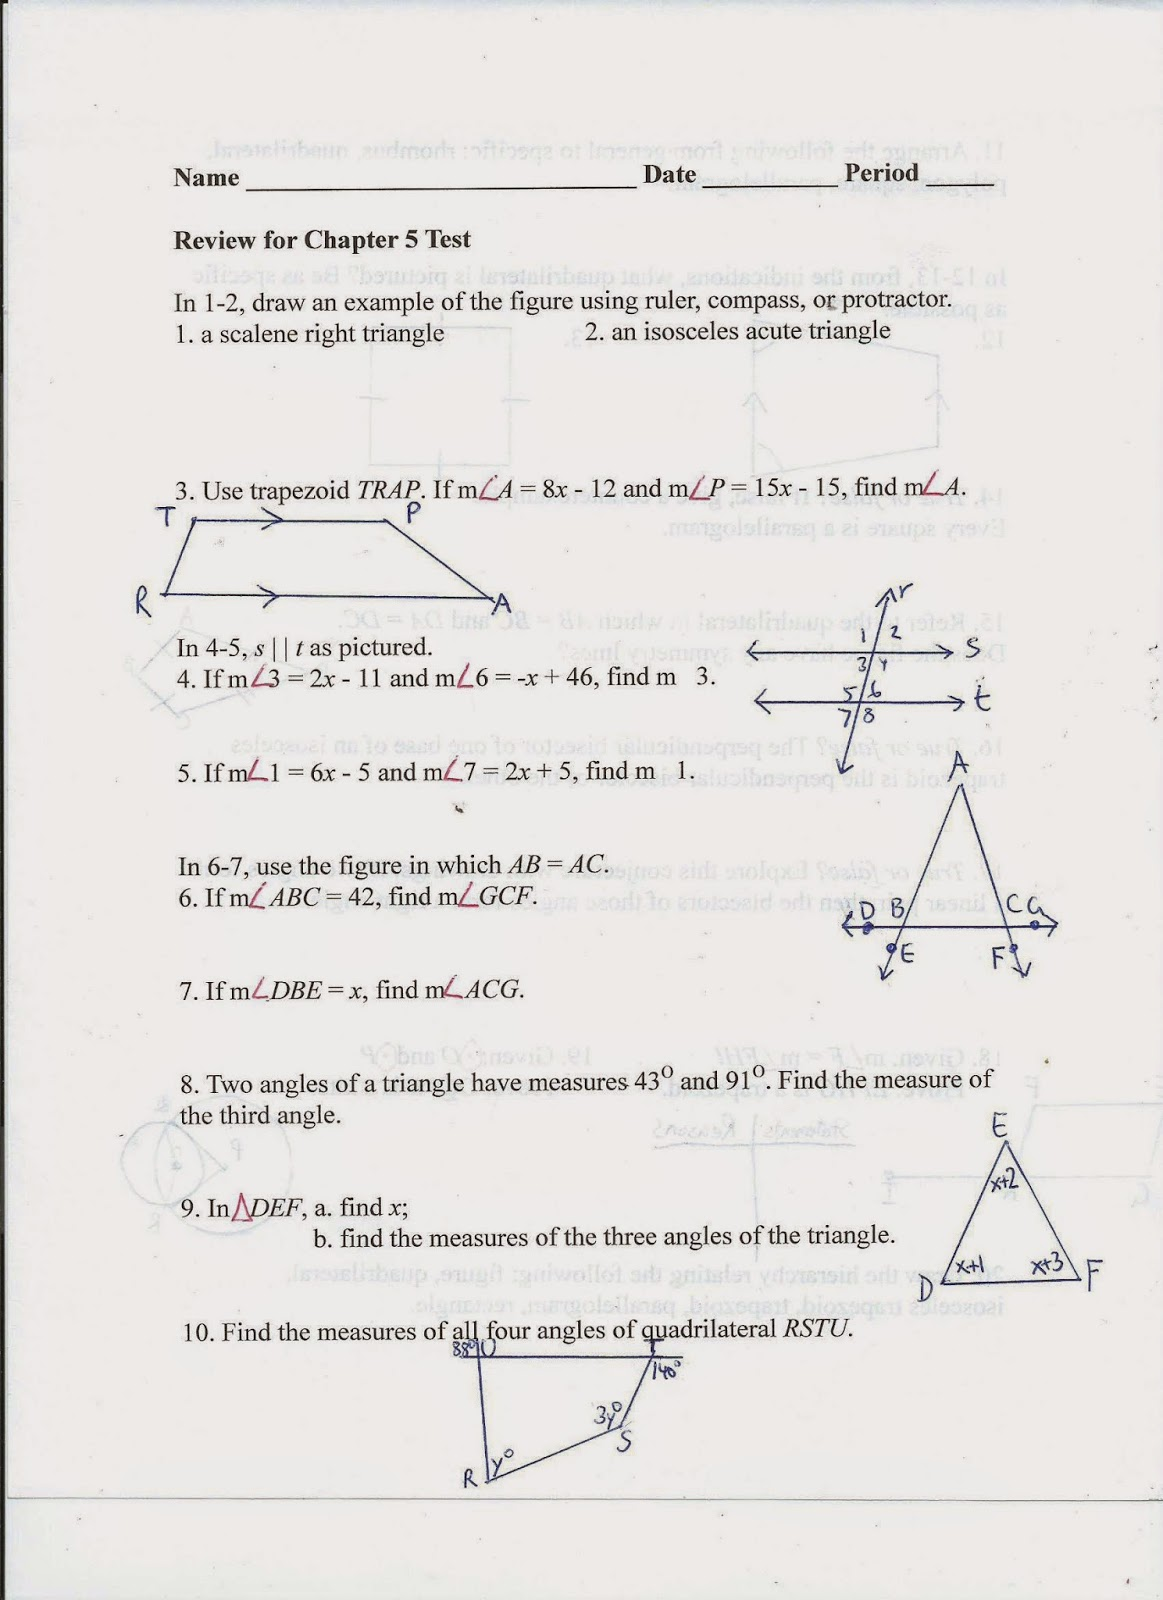 Cpm Homework Help Geometry Proofs Of Quadrilaterals